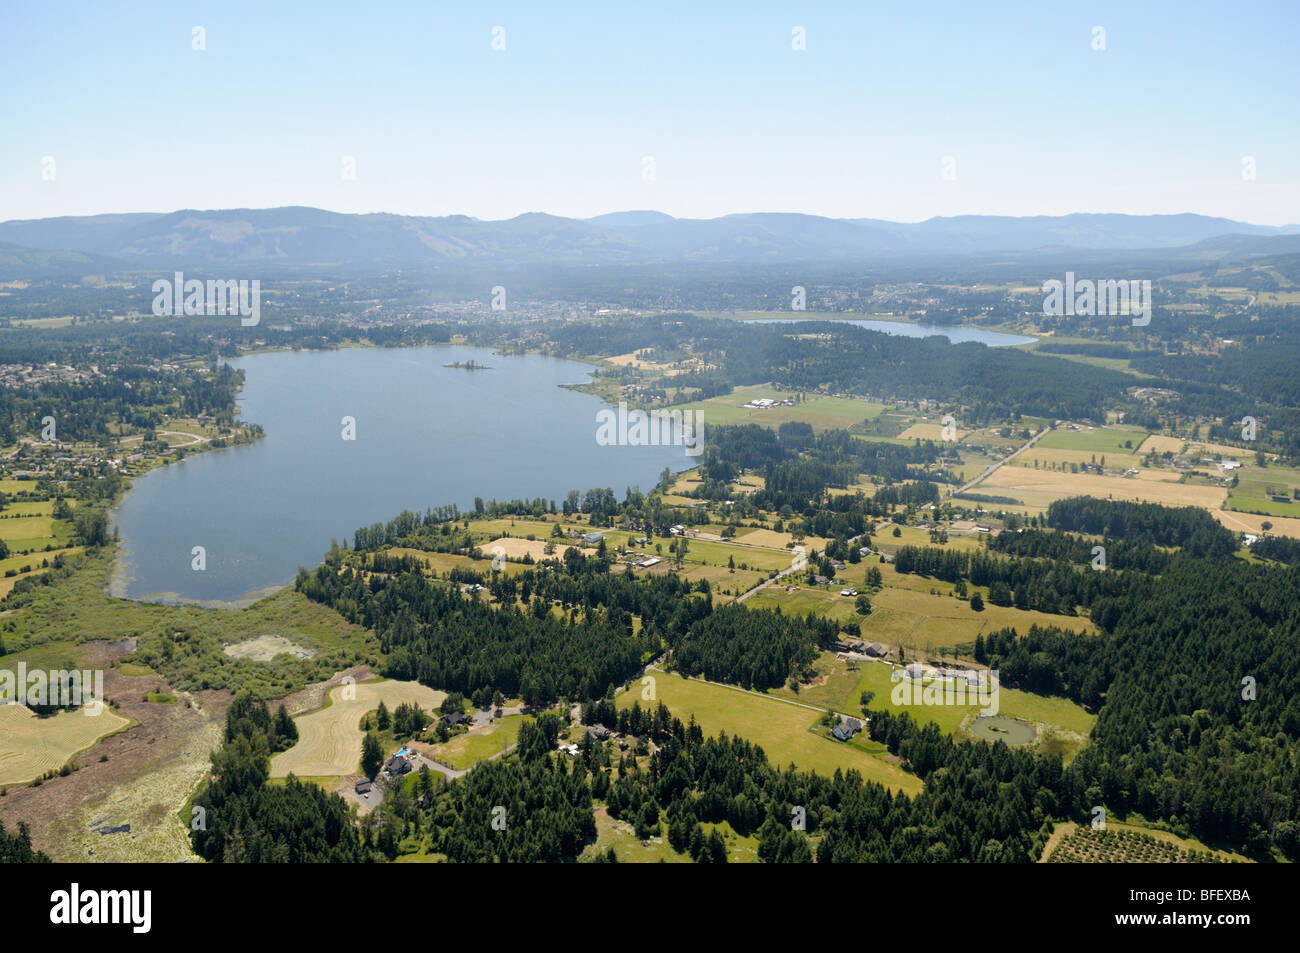 Aerial photograph of Quamichan Lake, Cowichan Valley, Vancouver Island, British Columbia, Canada. Stock Photo